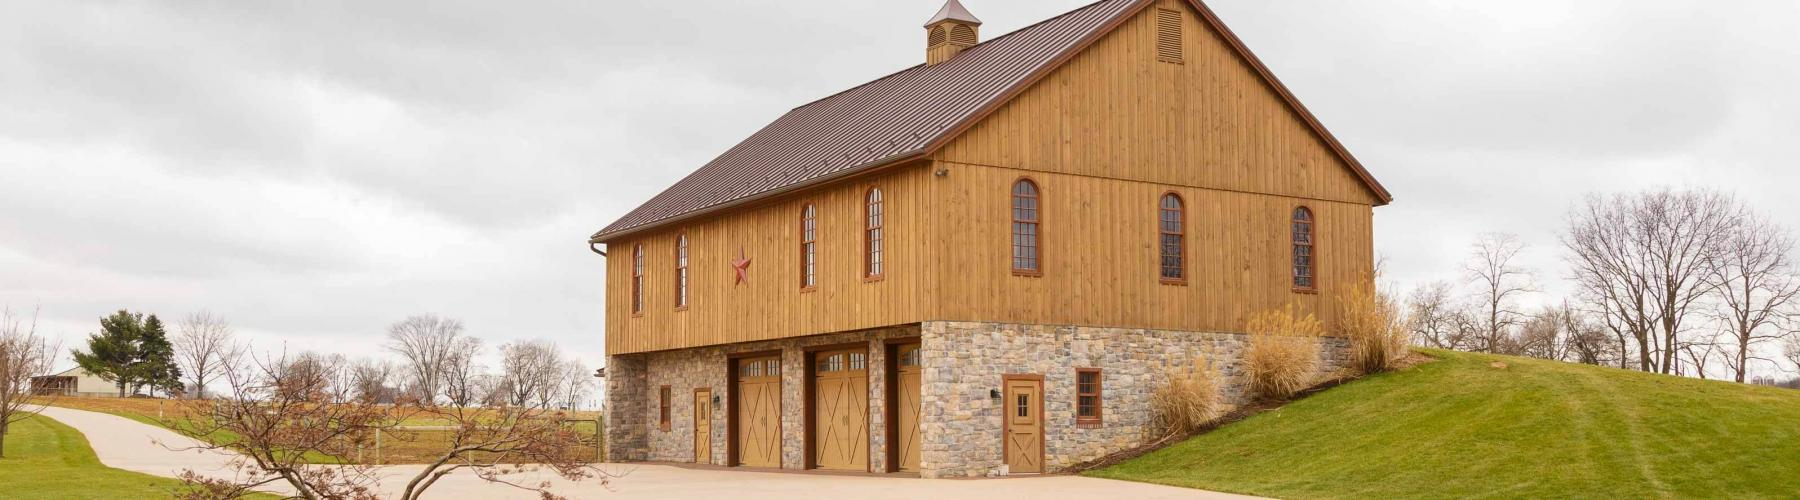 New bank barn built by Stable Hollow Construction